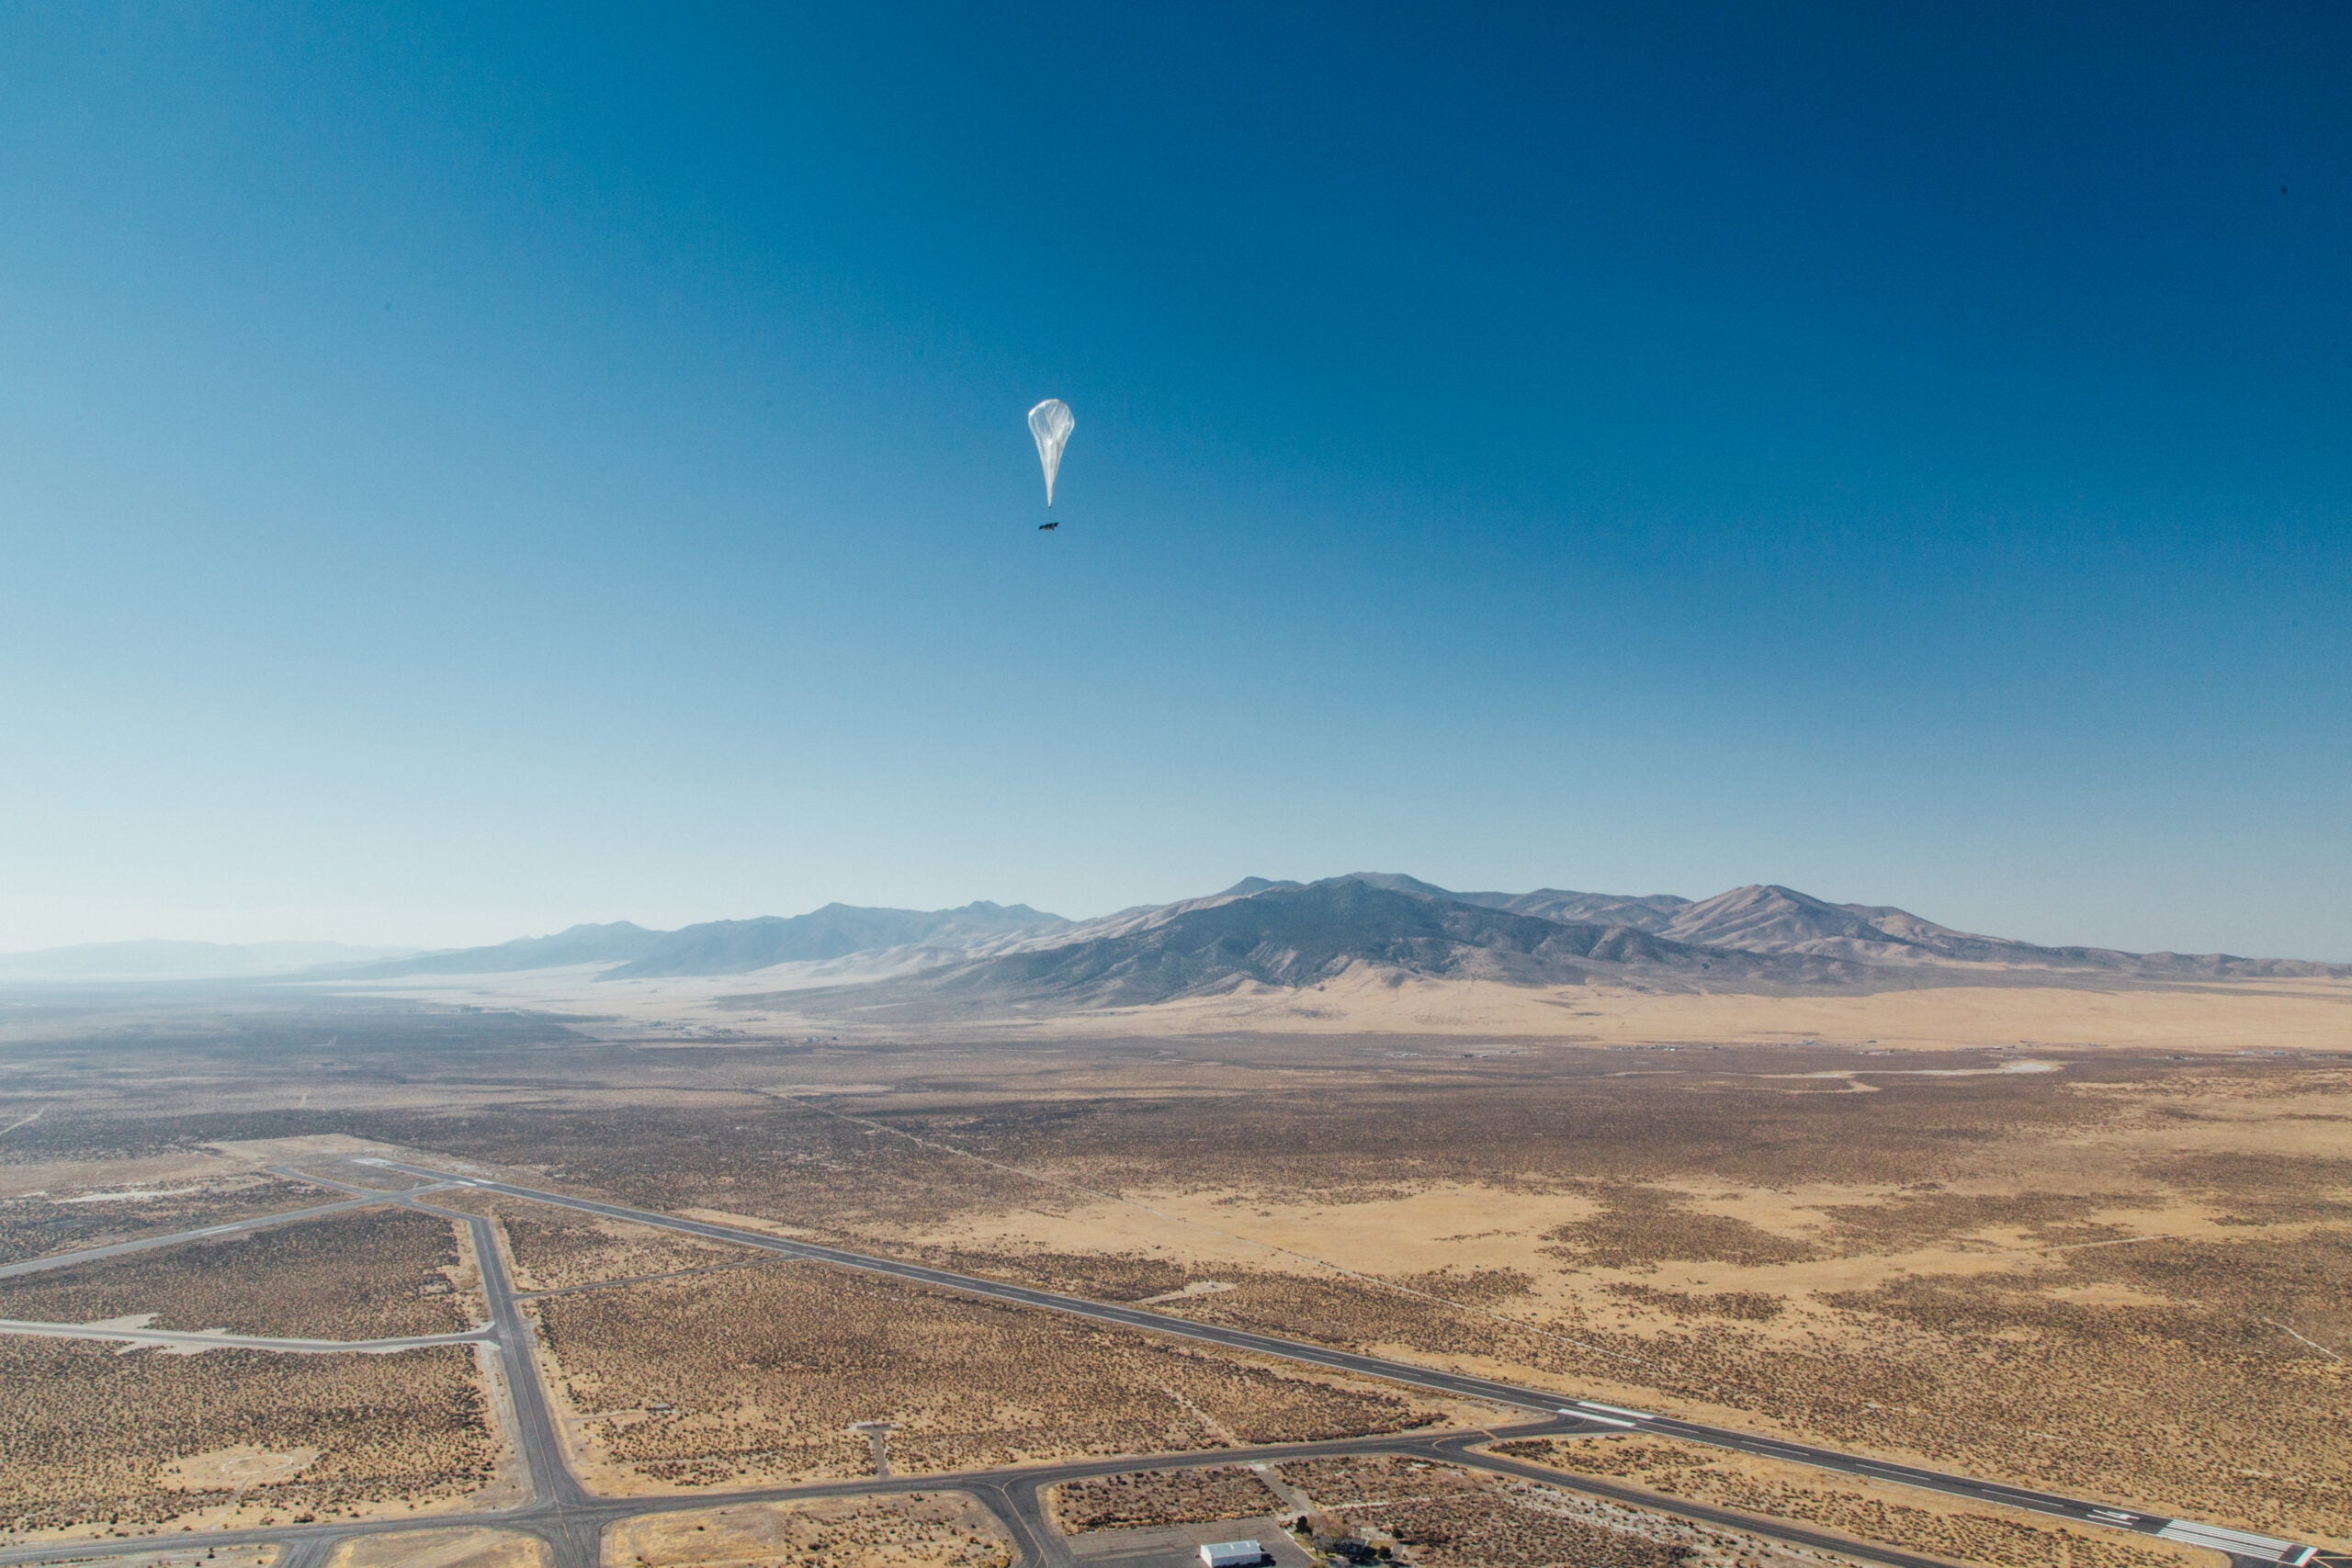 Sending wireless data 372 miles between two balloons takes really good aim